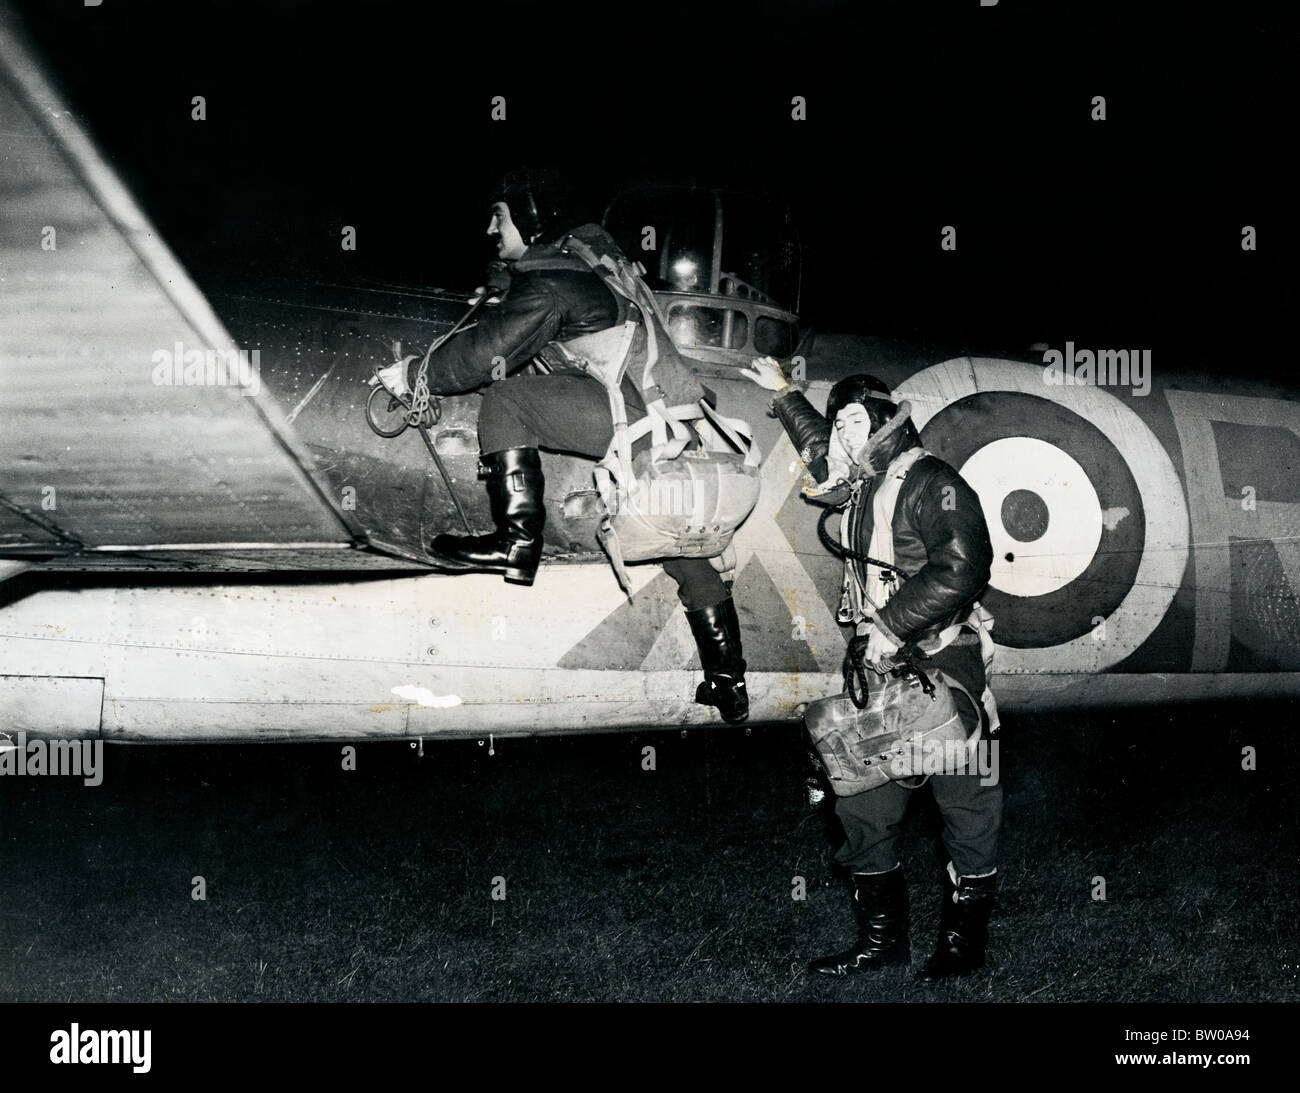 Pilot & Gunner climb into their RAF Blenheim aircraft for a night fighter patrol - Stock Image